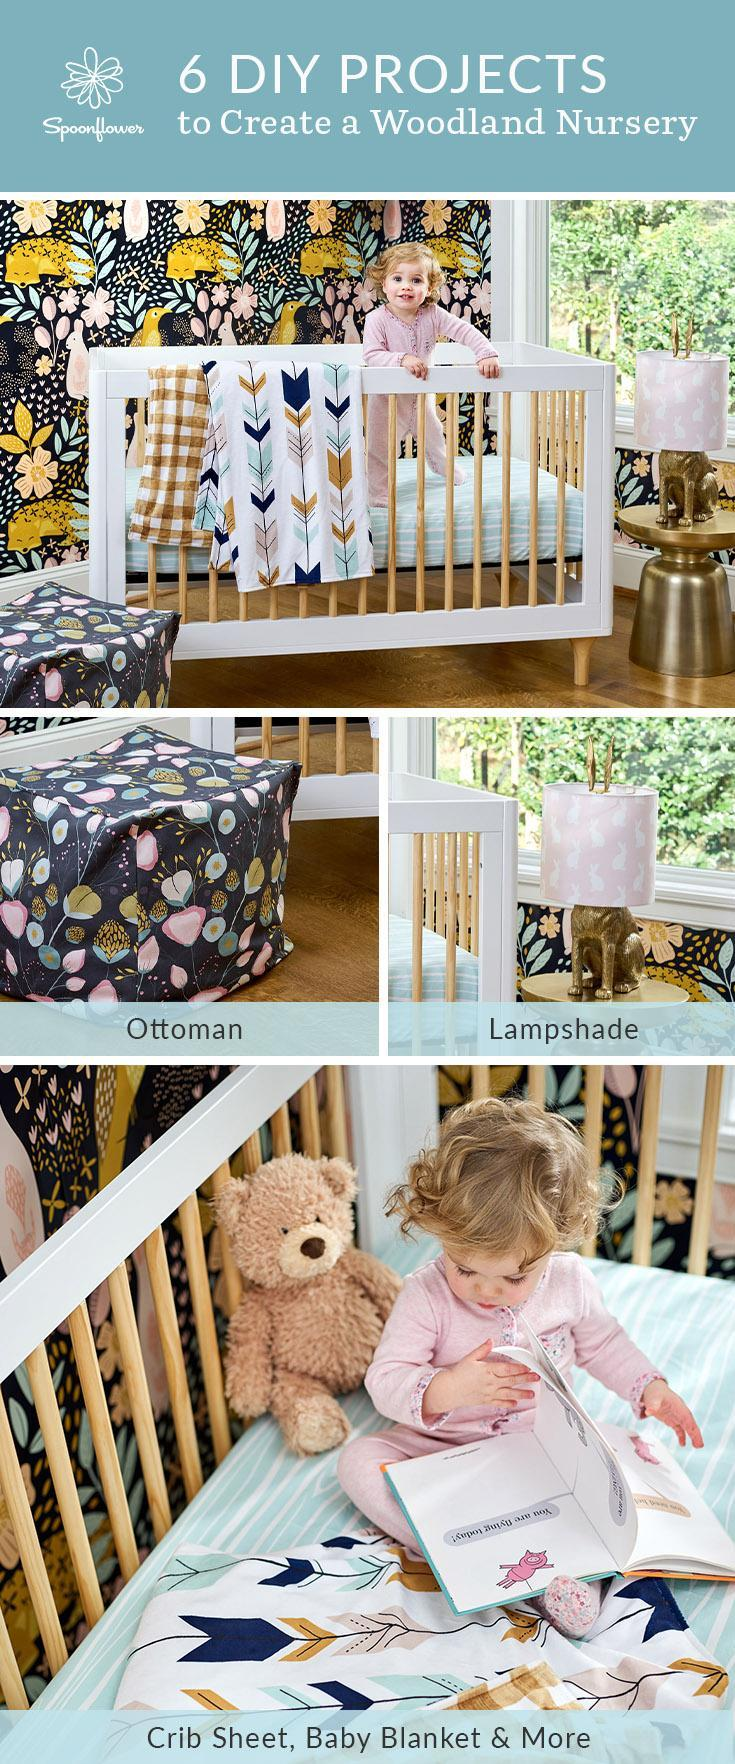 Design a Woodland Nursery with these 6 DIY projects | Spoonflower Blog